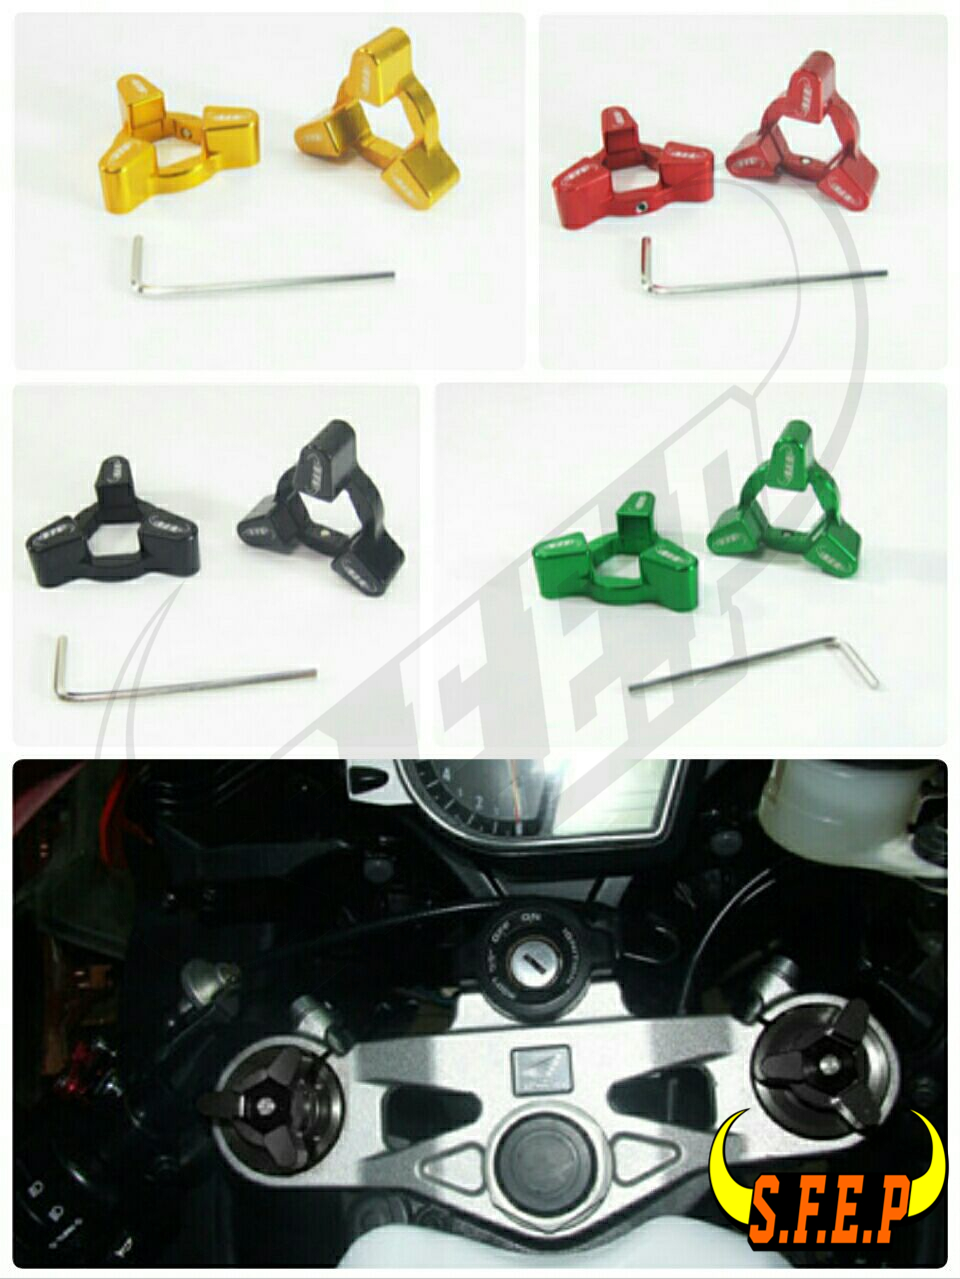 Motorcycle CNC Fork Preload Adjusters For BUELL XB12 all models up to 08/ XB9 all models 03-09